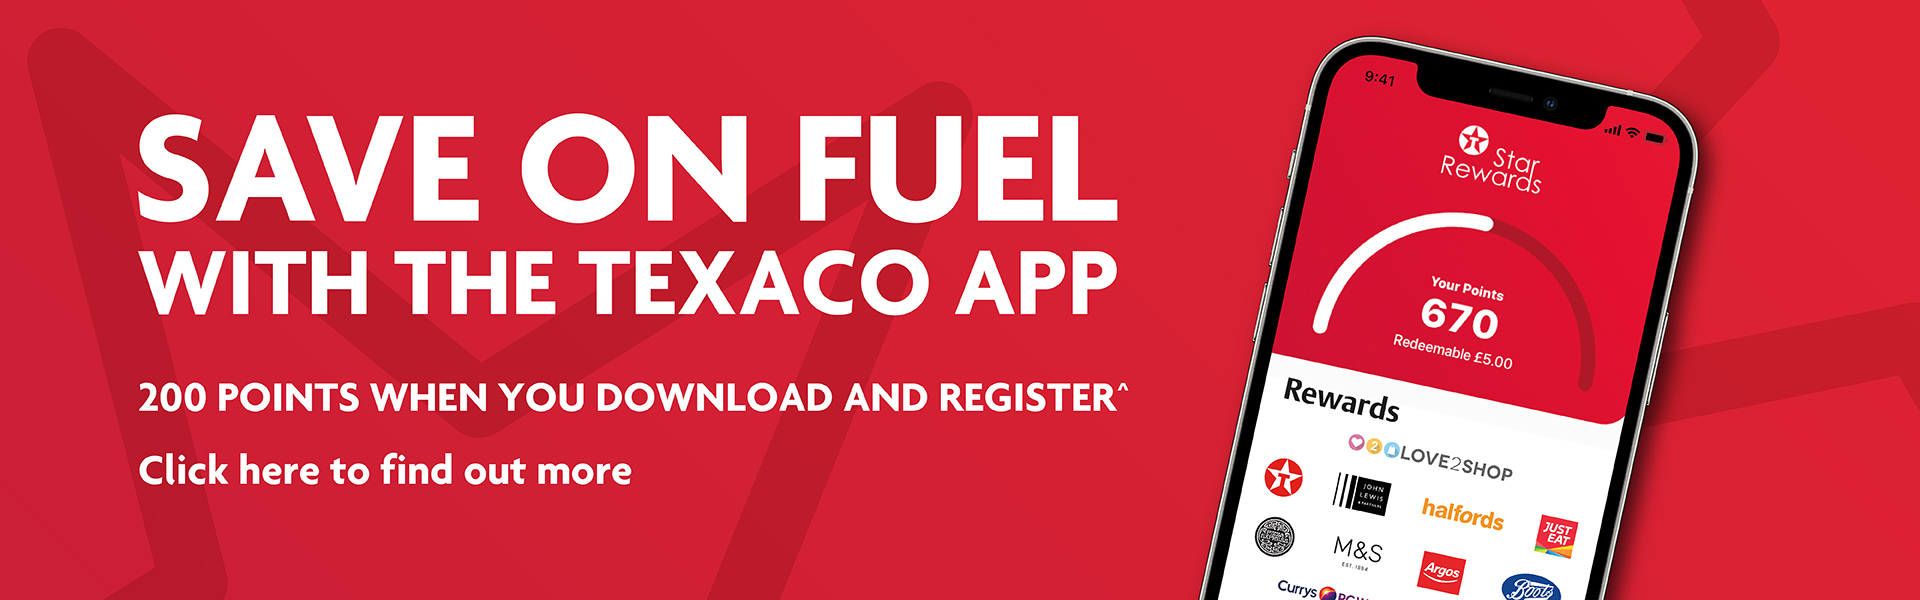 Save on fuel with the Texaco app